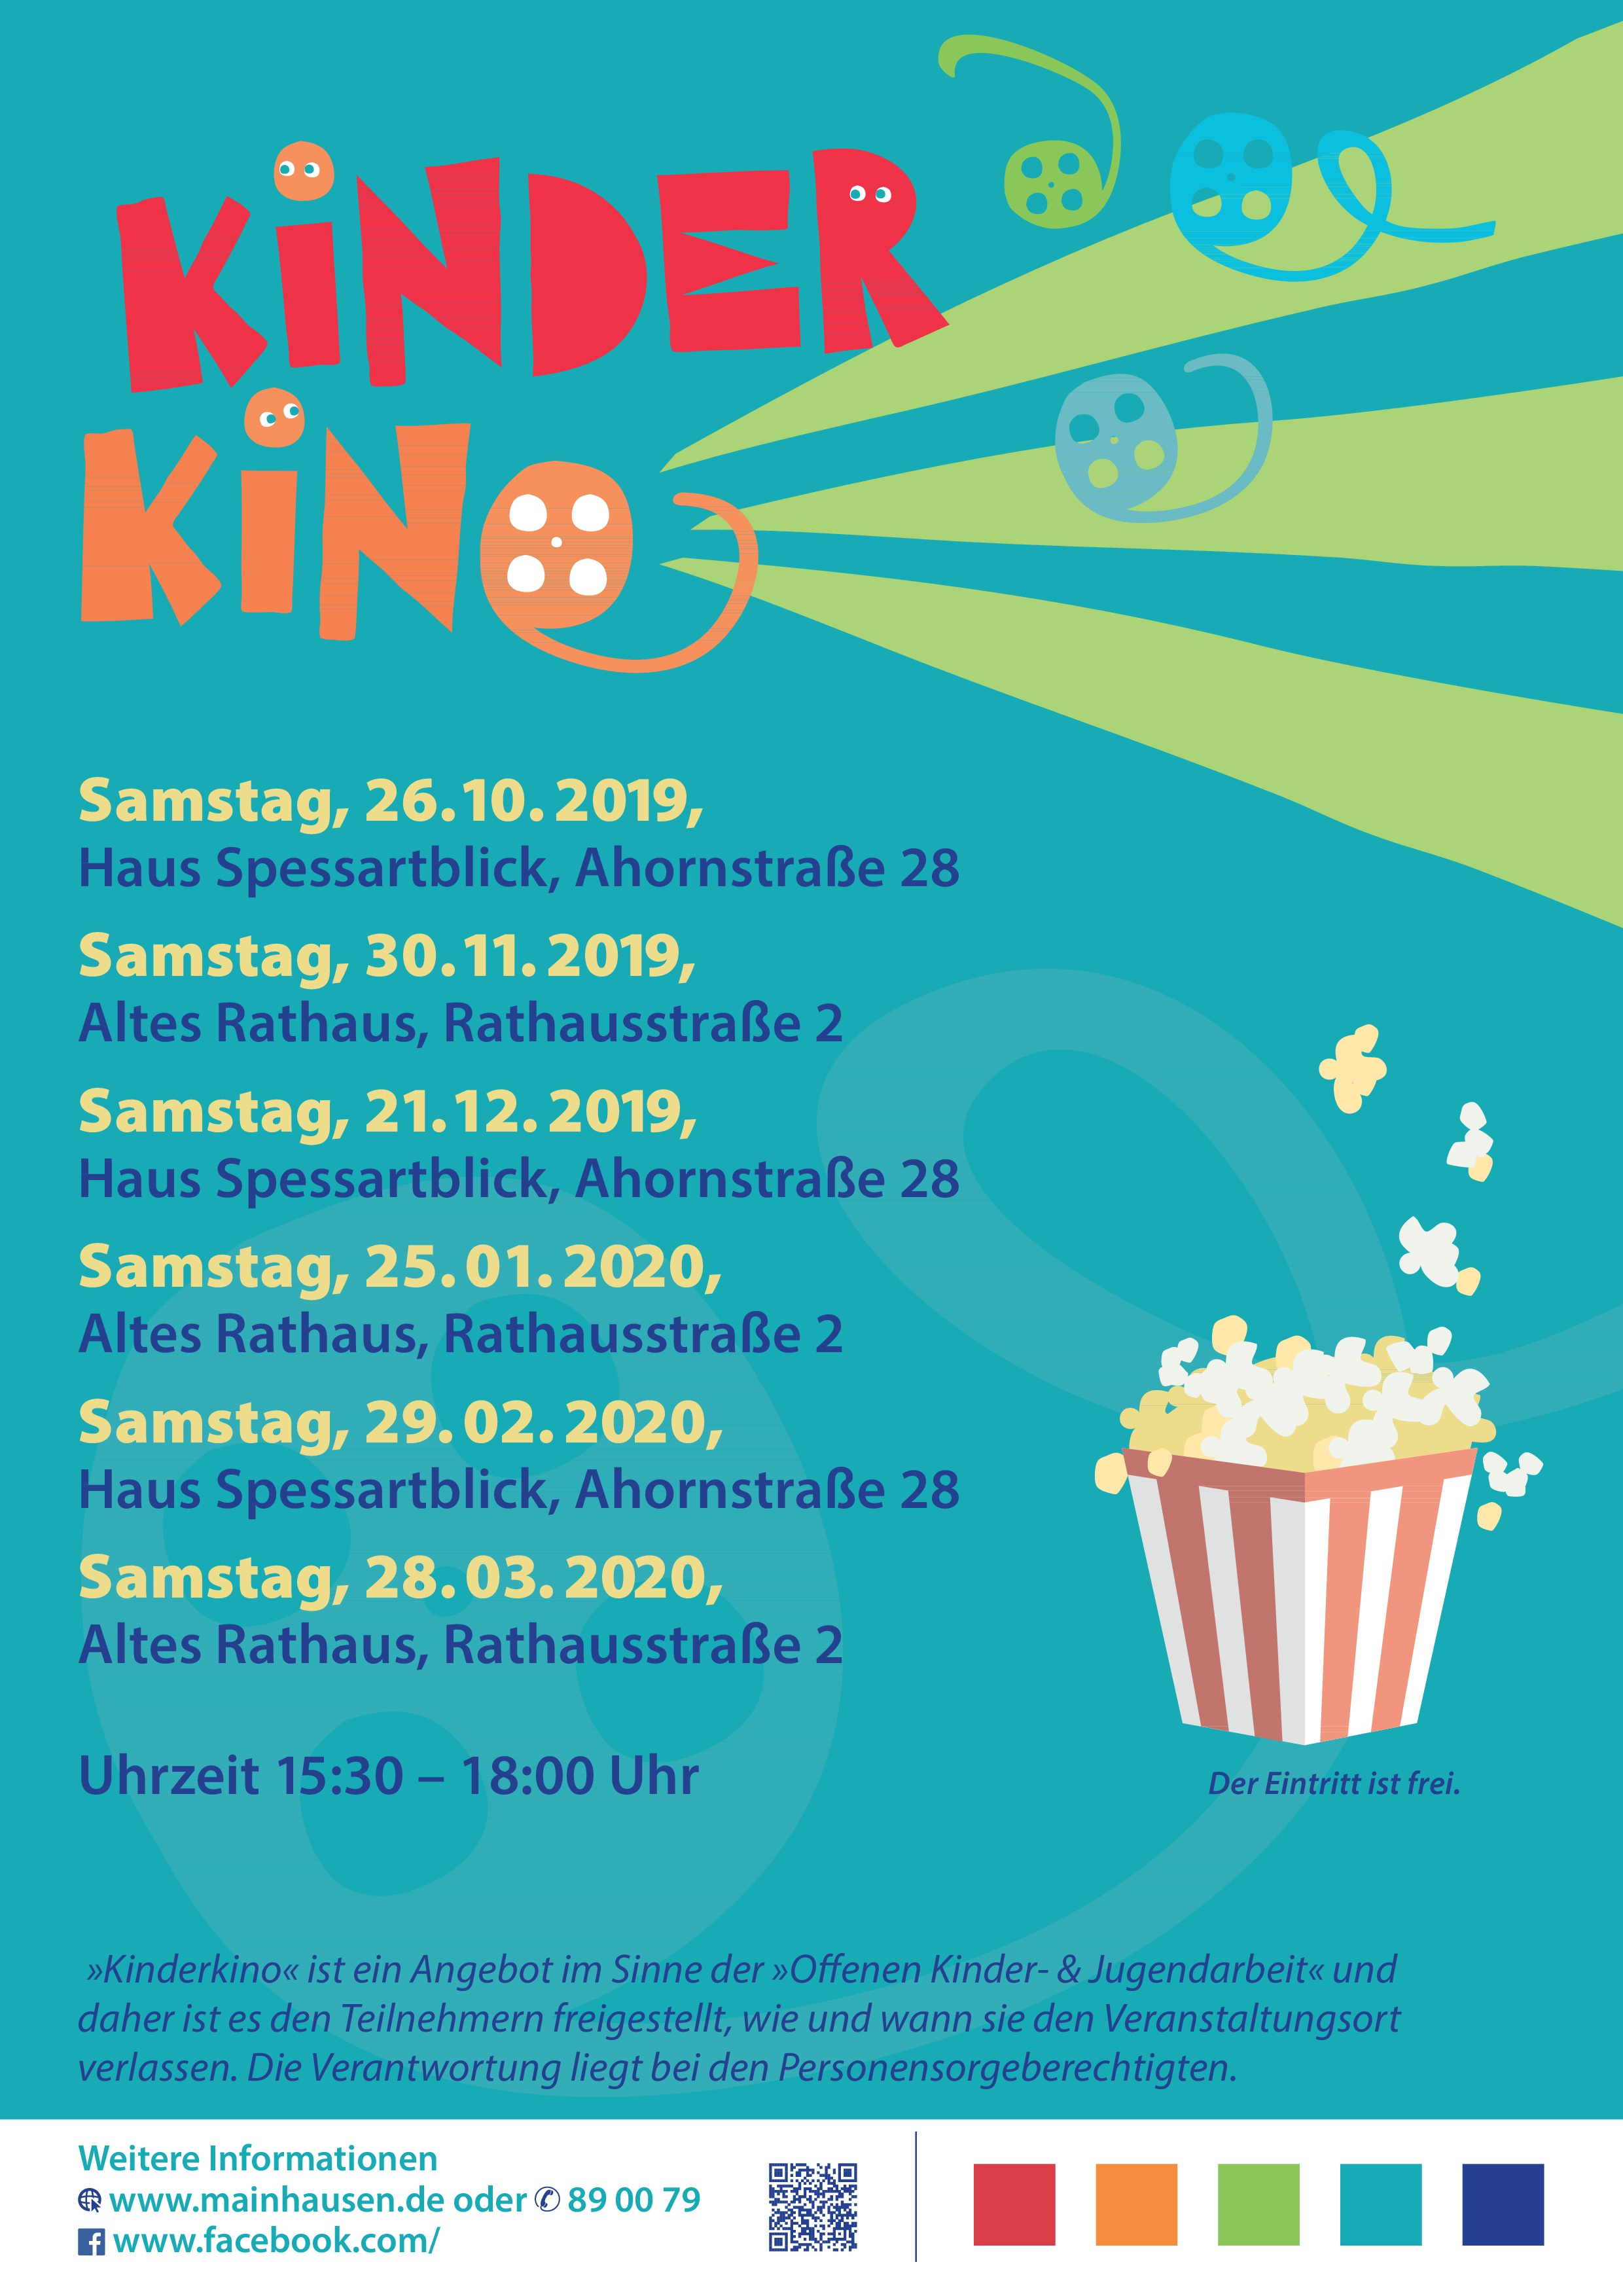 Mainhausen_Kinderkino_2019_20_DINA2